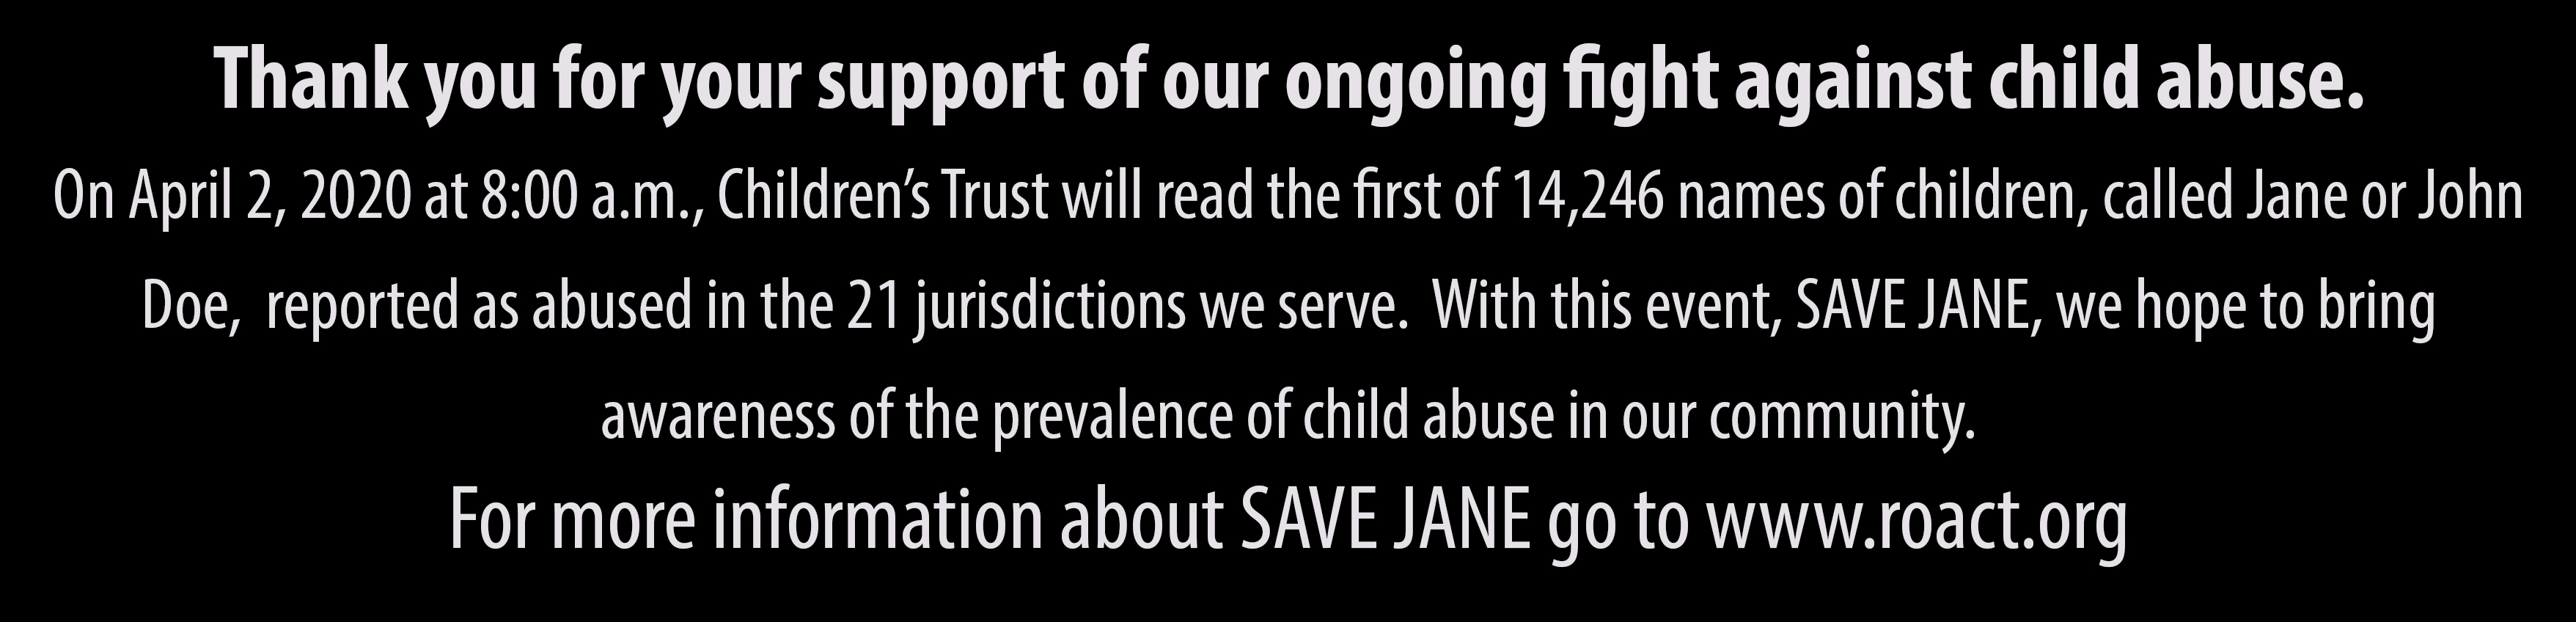 On April 2, 2020 at 8:00 a.m., Children's Trust will begin reading the first of 14,246 names of children reported as abused in the 21 jurisdictions served by the programs of Children's Trust.  Each name represents an actual child and their experience of abuse. Through this event, we will bring awareness to our community about the prevalence of child abuse.